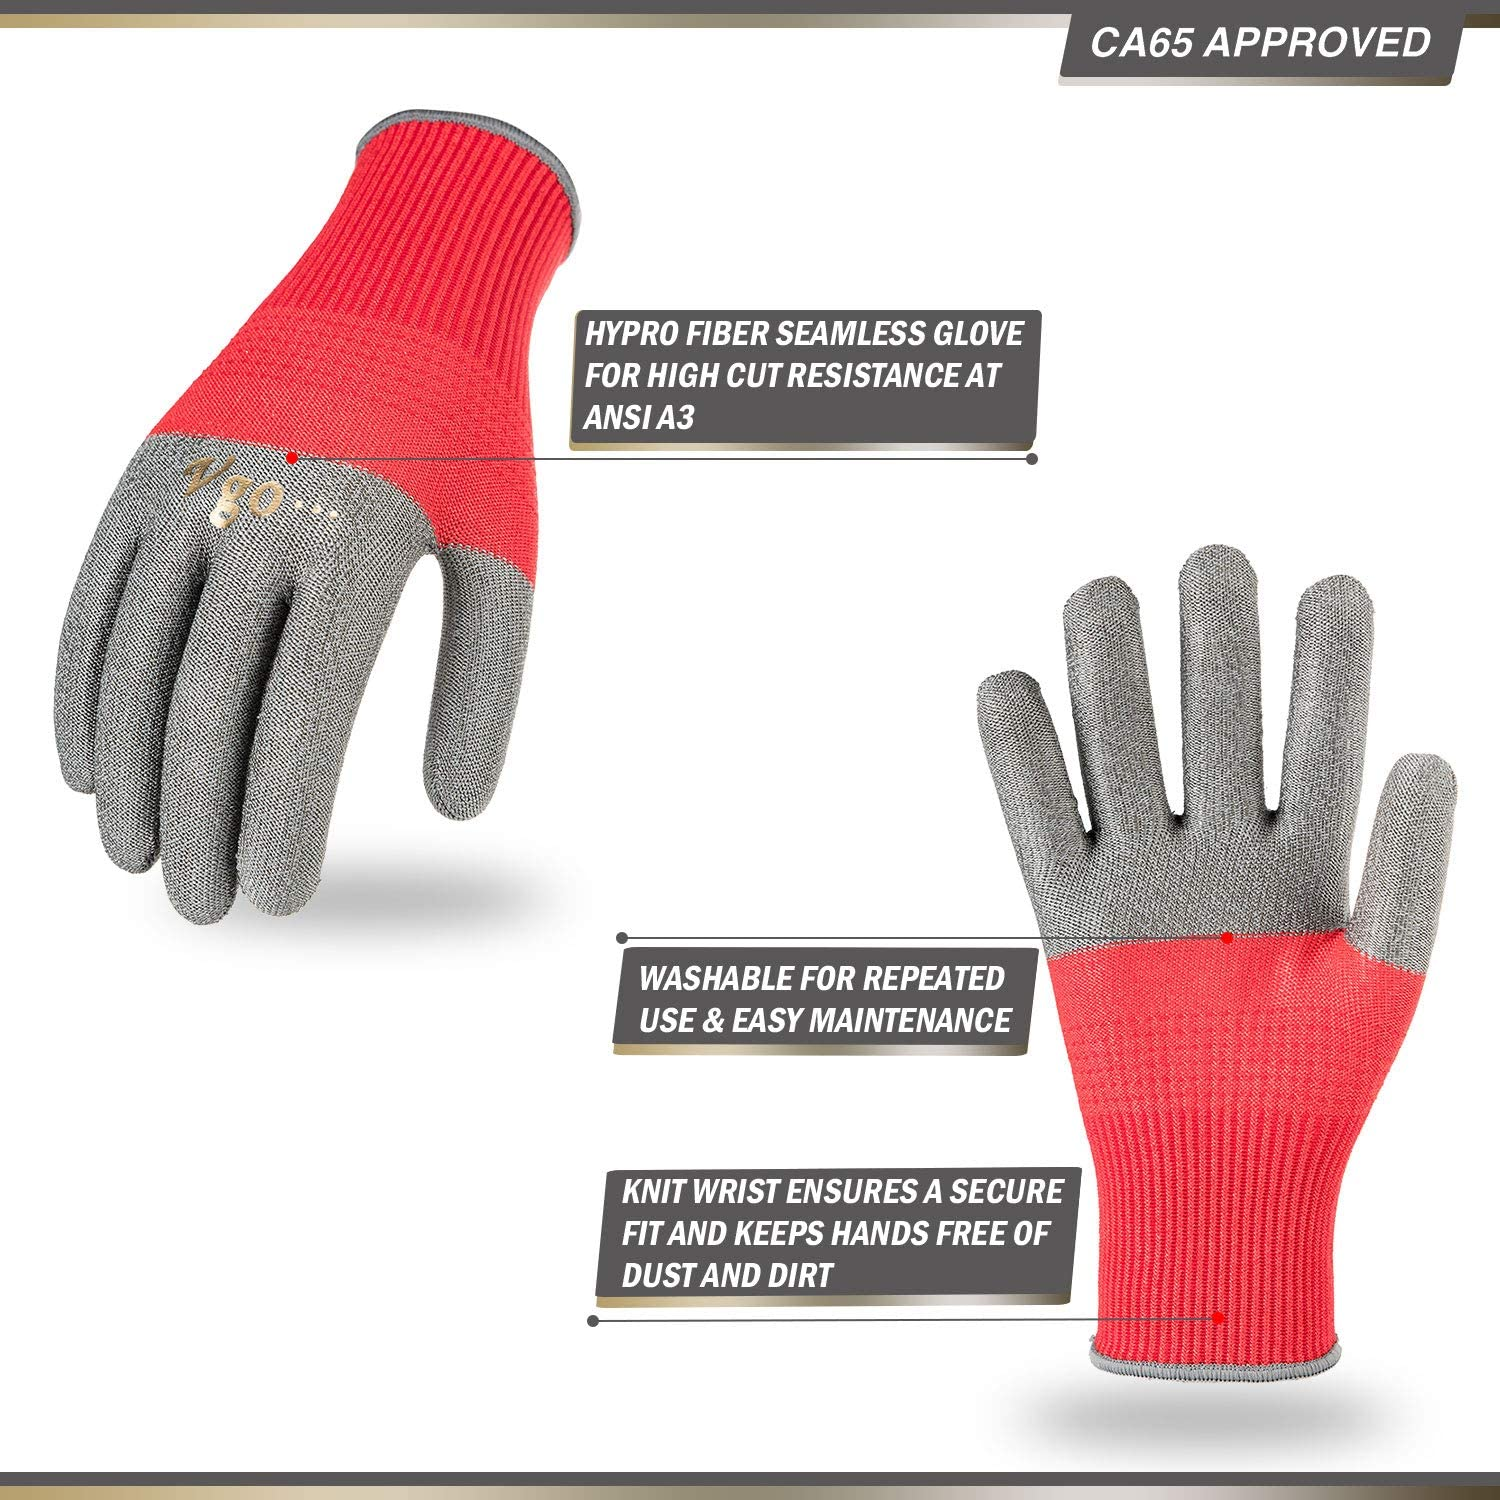 Vgo 5Pairs Washable Cut Resistant Work Gloves Dust Proof Knitted Cuff Dipping Gloves Size L, 3Colors, HY2155